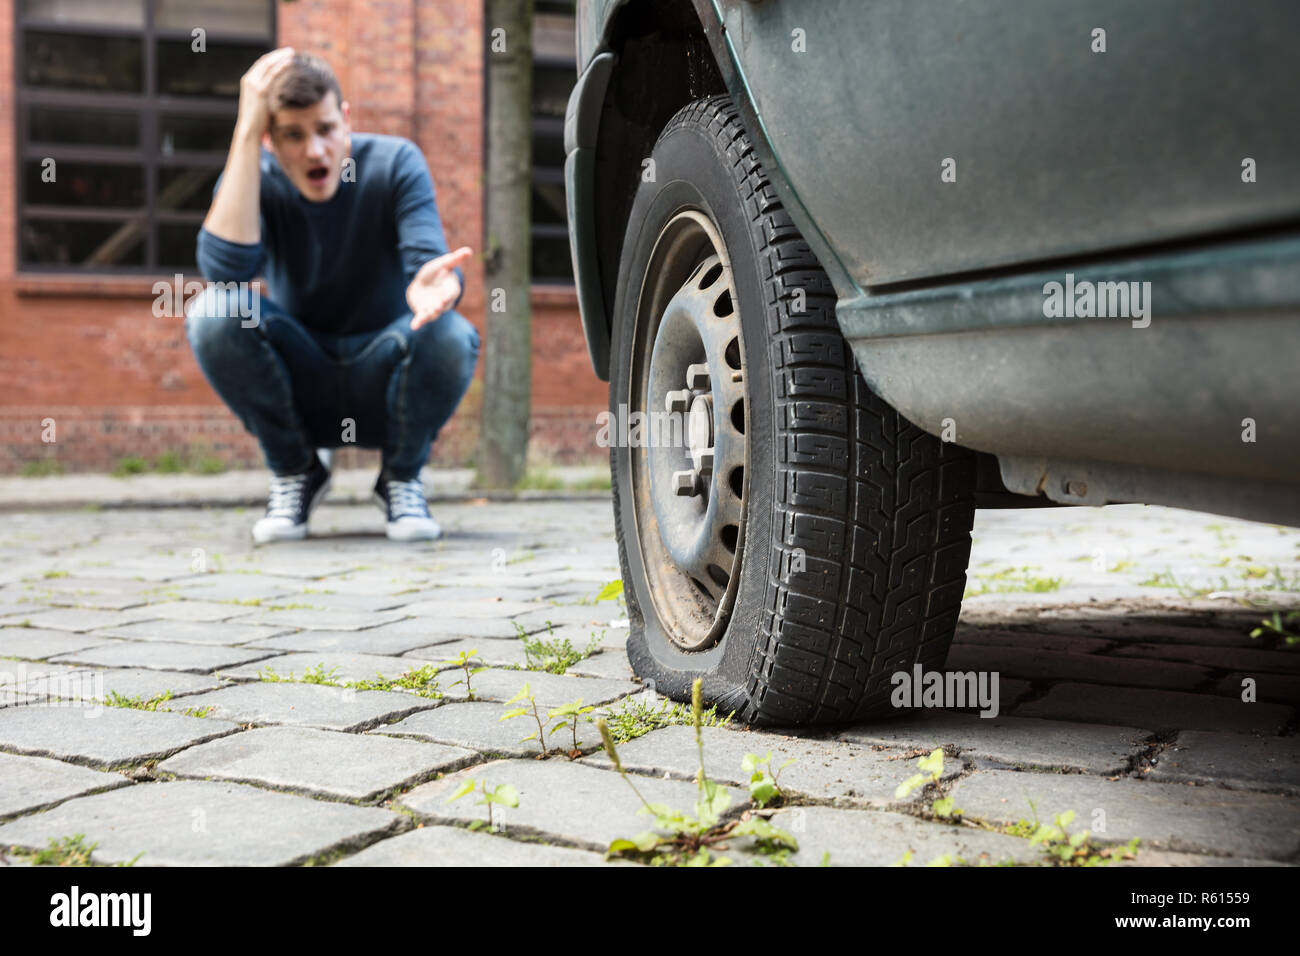 Crouched Man Pointing At Punctured Car Tire - Stock Image